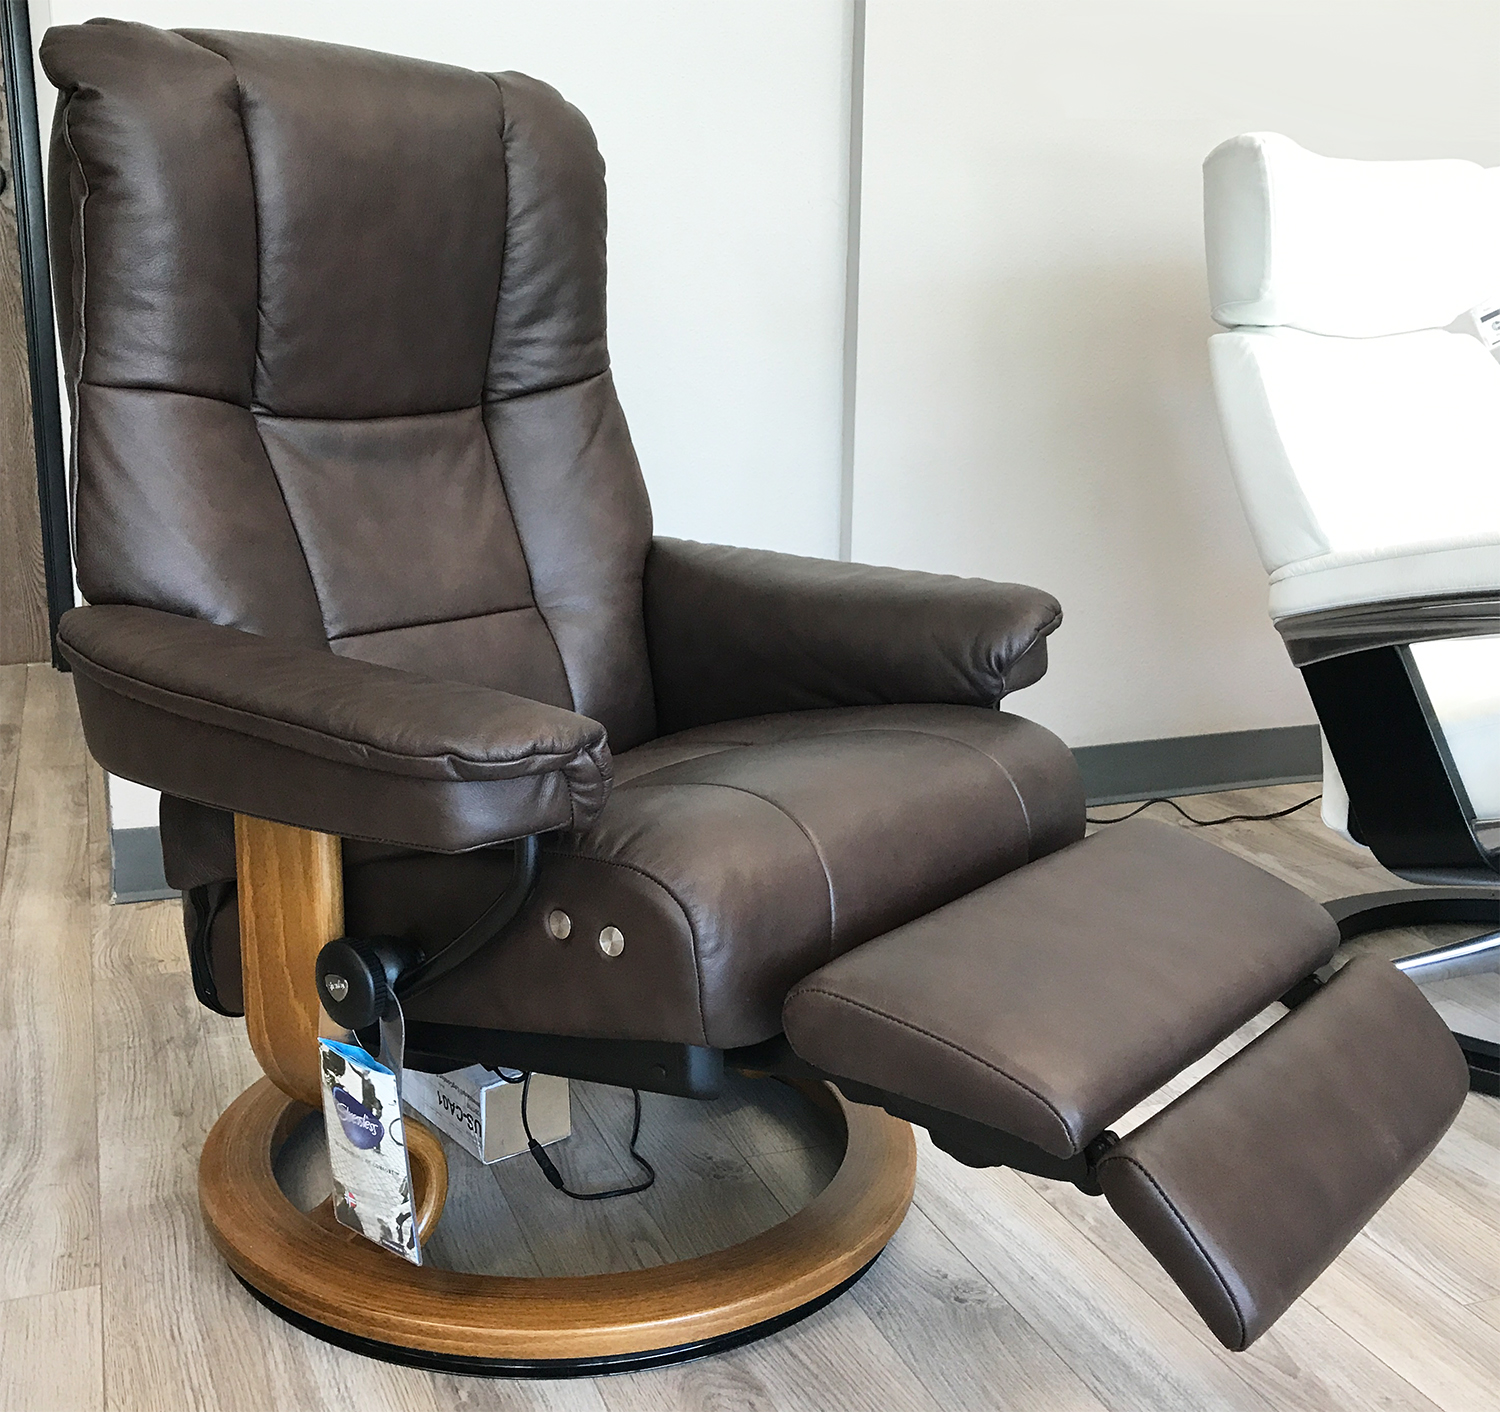 Stressless Nordic Legcomfort Stressless Mayfair Legcomfort Paloma Chocolate Leather Recliner Chair By Ekornes